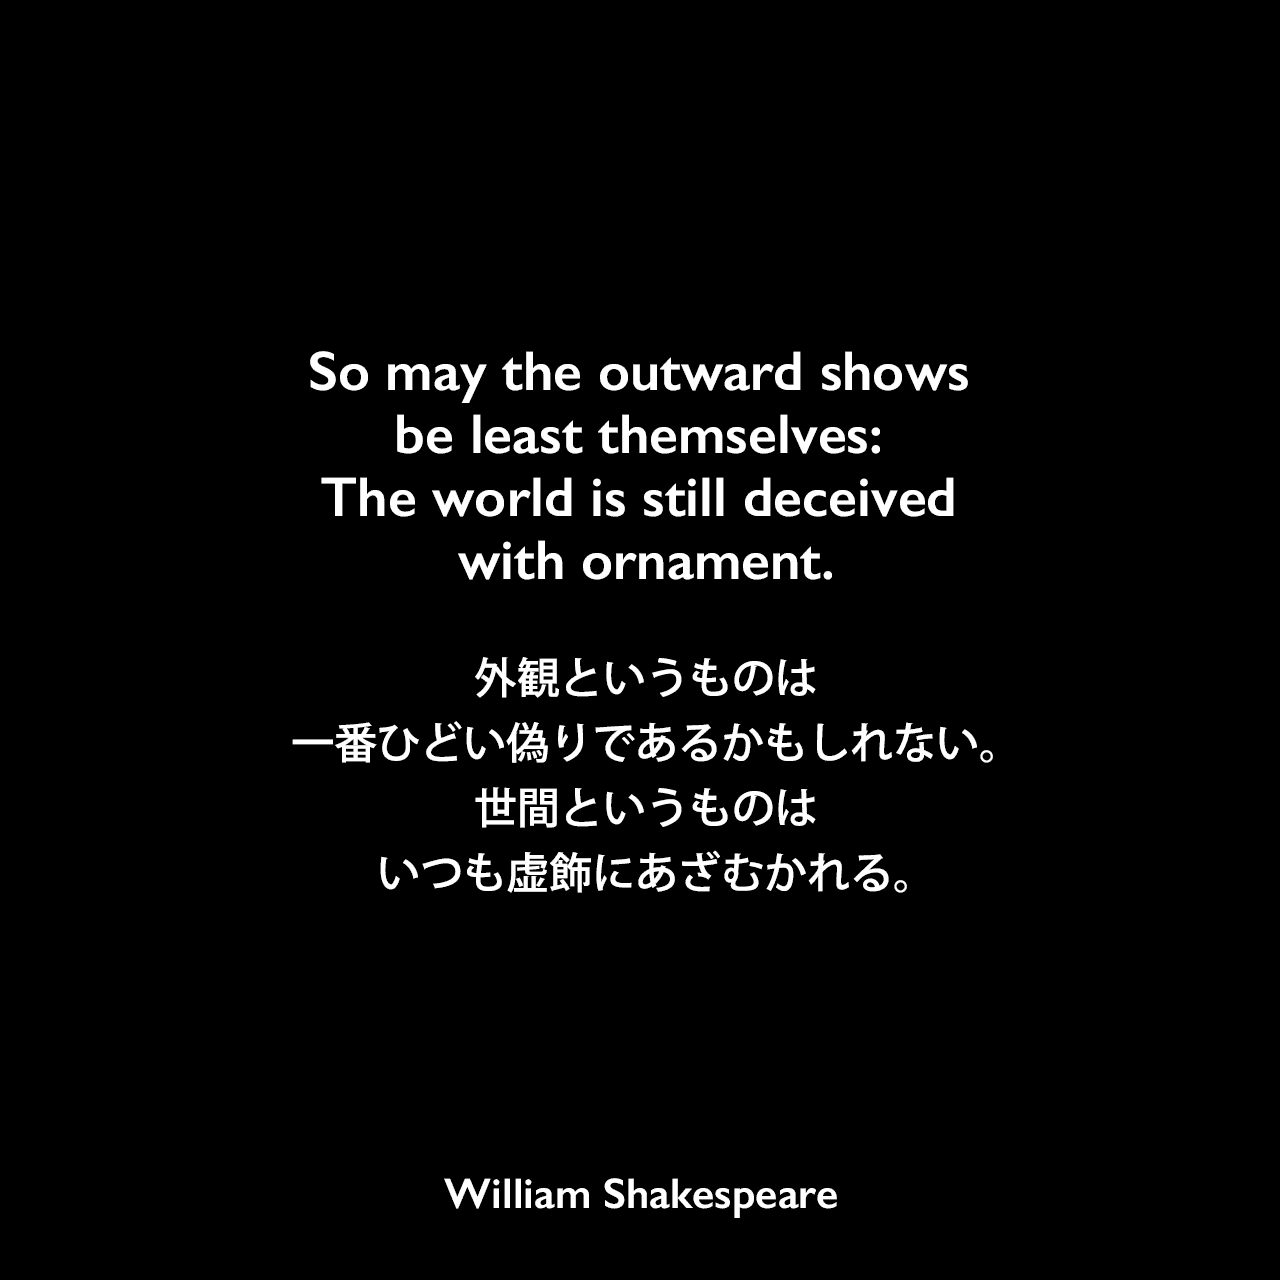 So may the outward shows be least themselves: The world is still deceived with ornament.外観というものは、一番ひどい偽りであるかもしれない。世間というものはいつも虚飾にあざむかれる。William Shakespeare